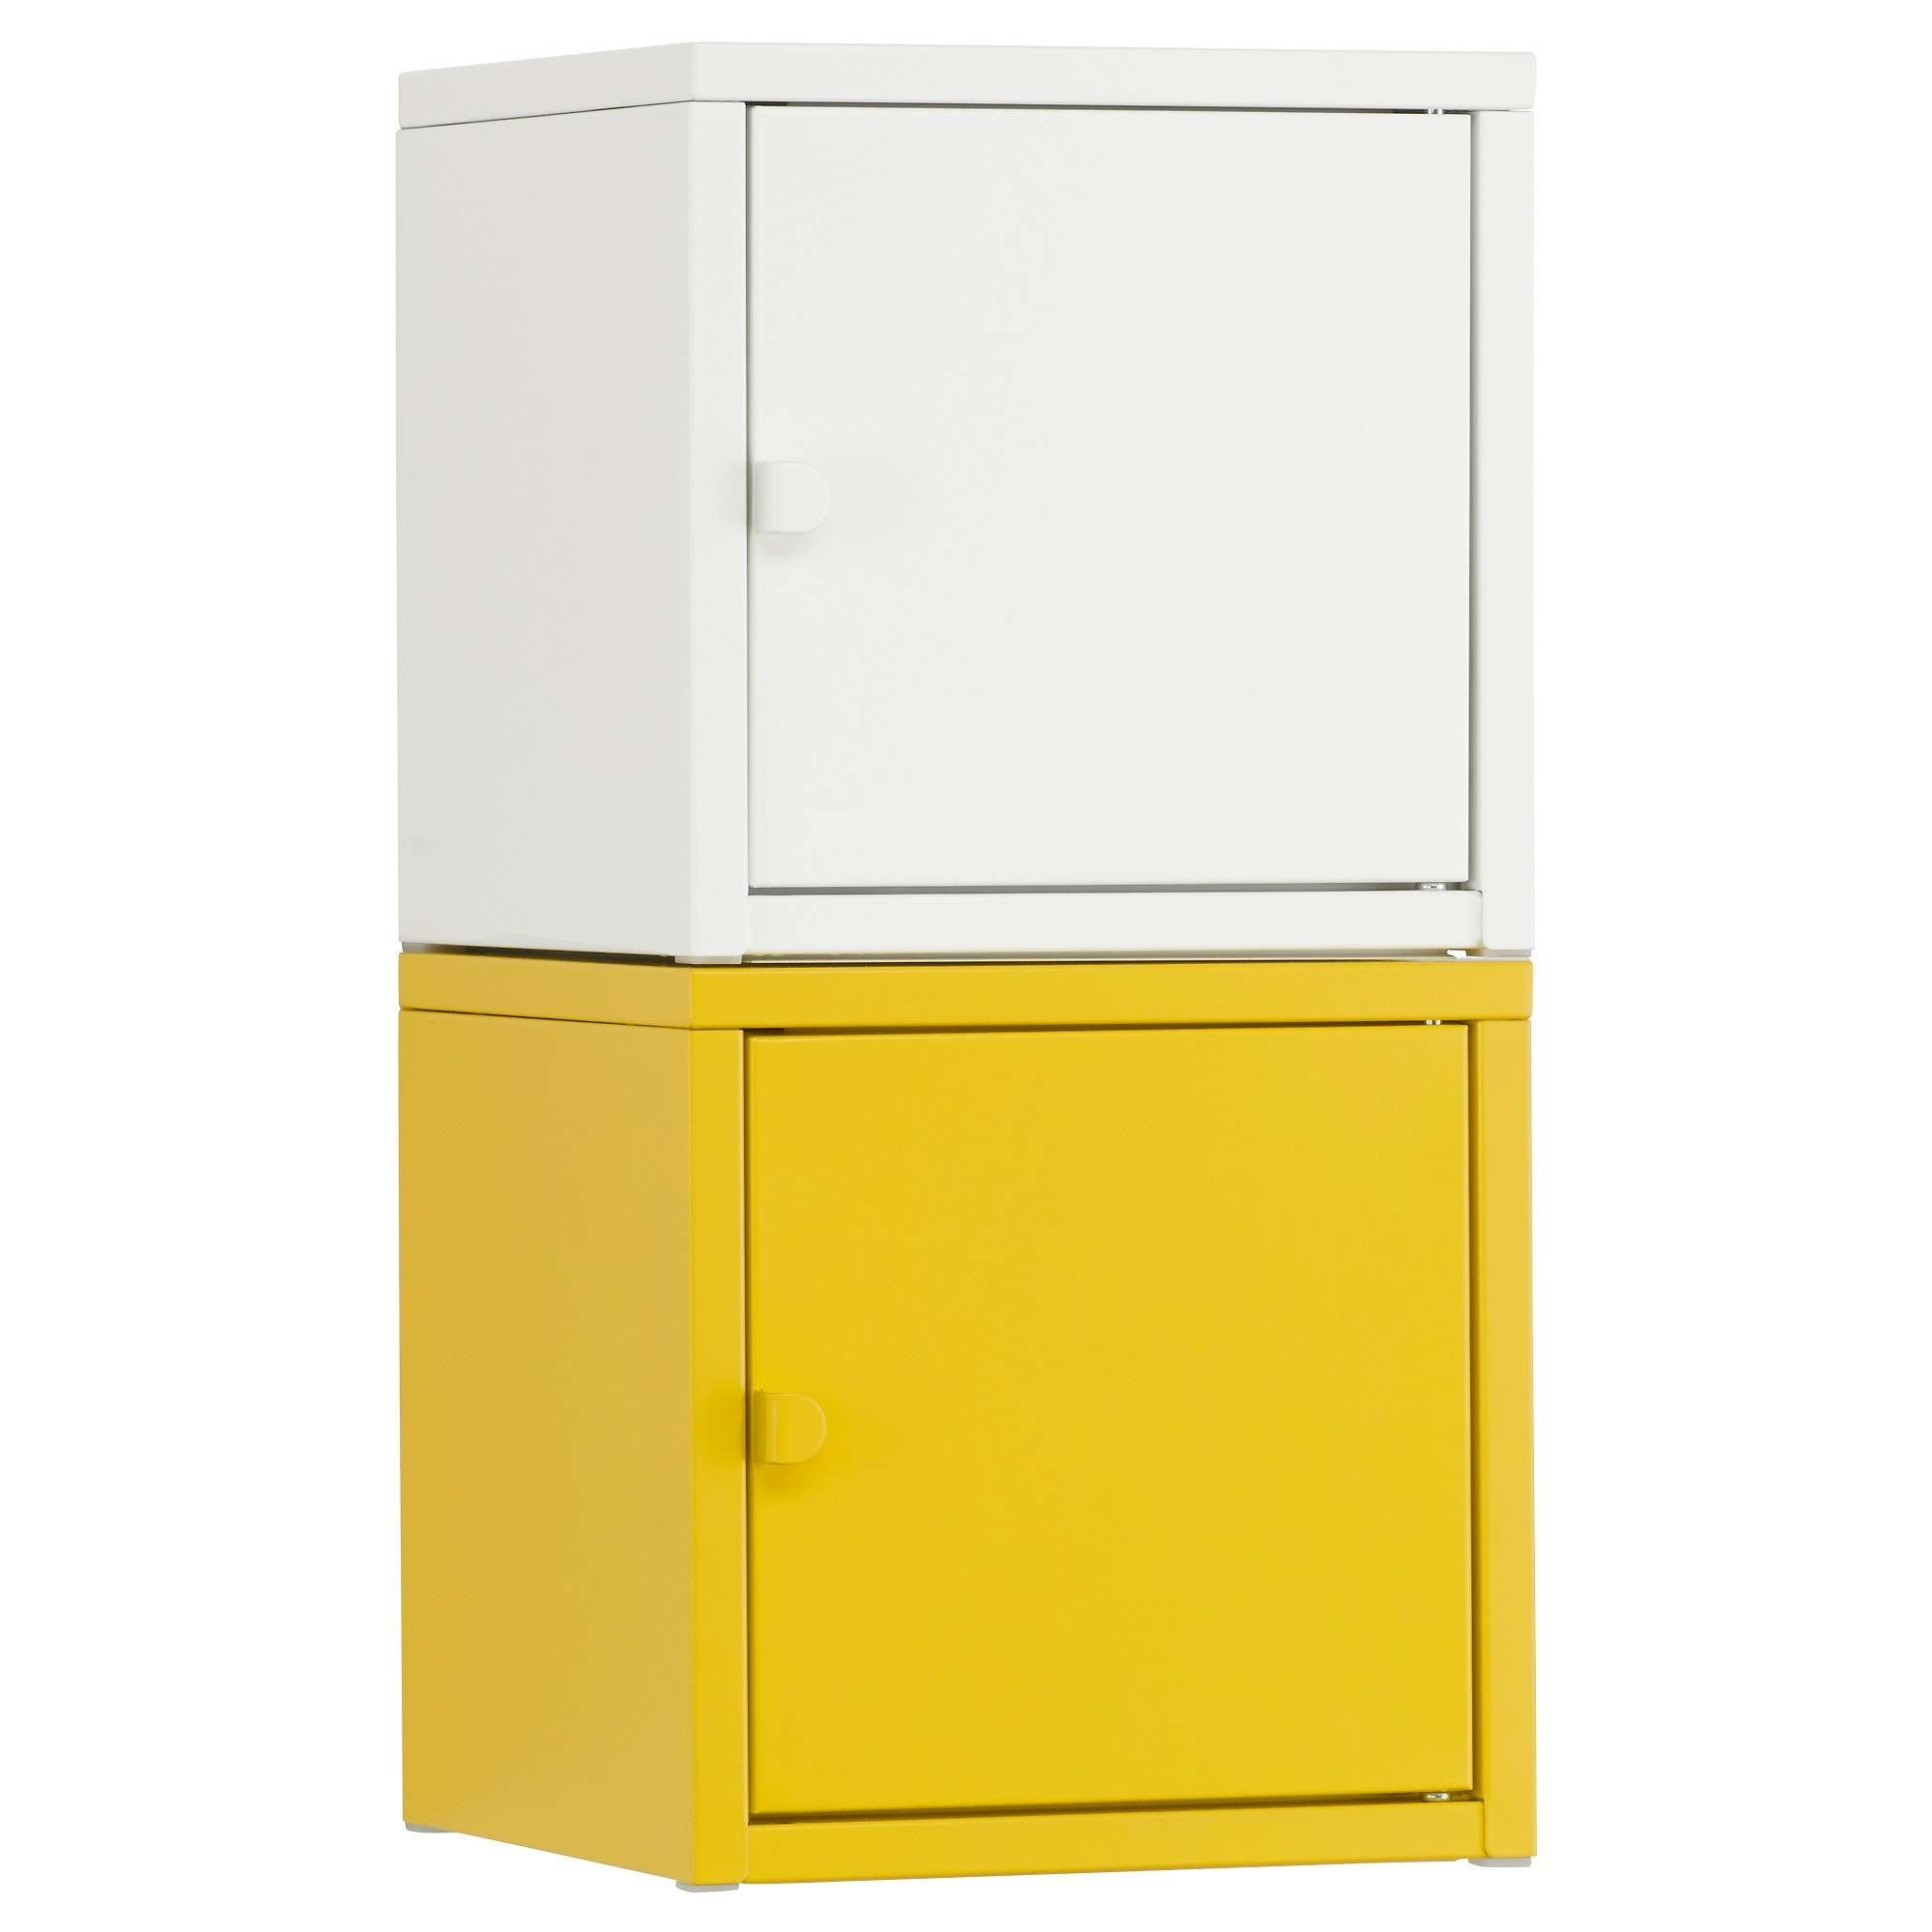 Cabinets Sideboards Ikea Image On Remarkable Wide Storage Cabinet Regarding 36 Inch Sideboards (View 10 of 20)